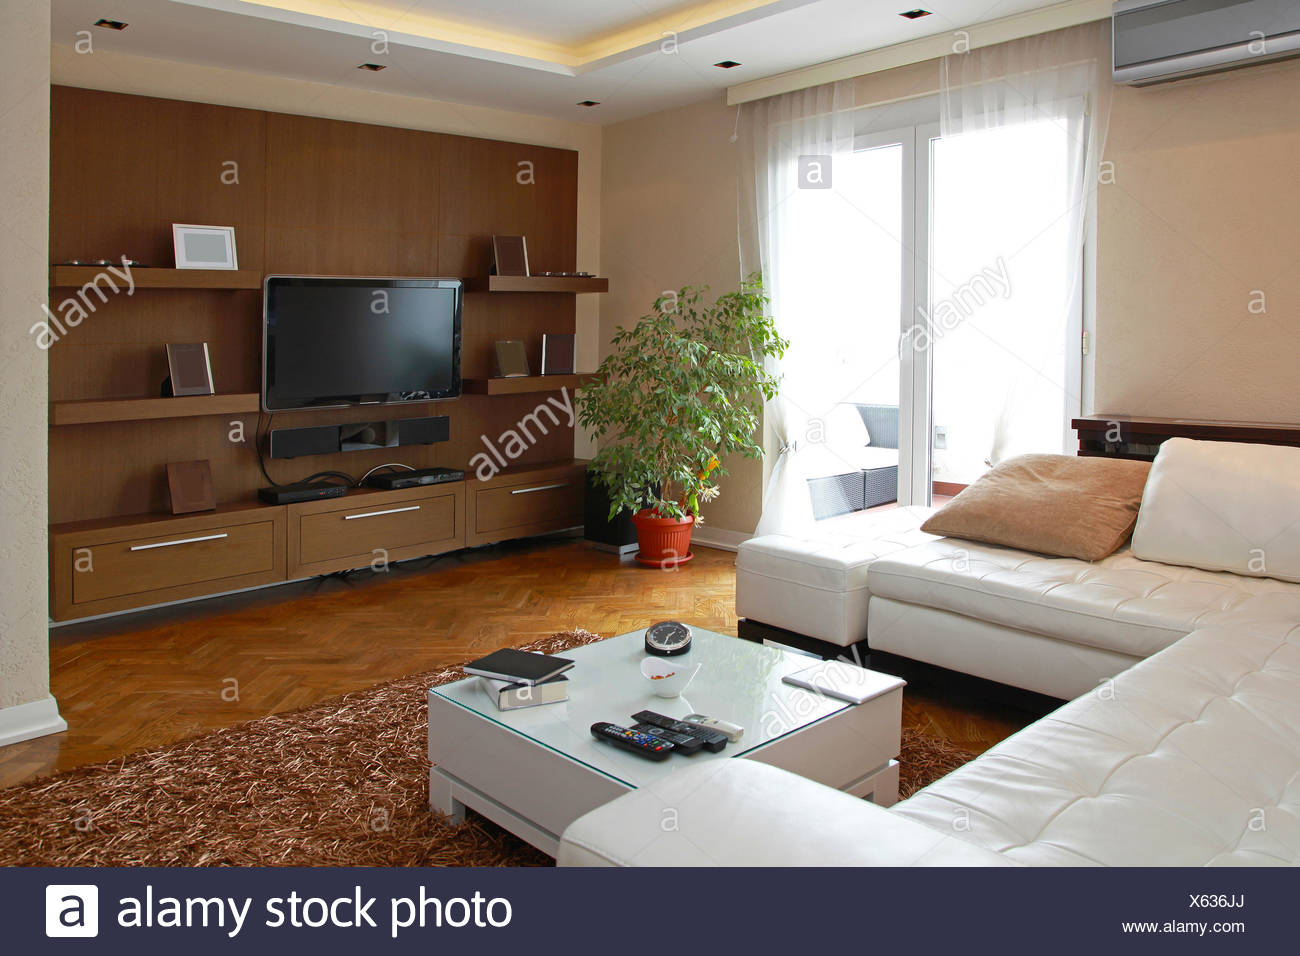 Living Room With Big Lcd Tv Shelf In Contemporary Apartment Stock Photo Alamy